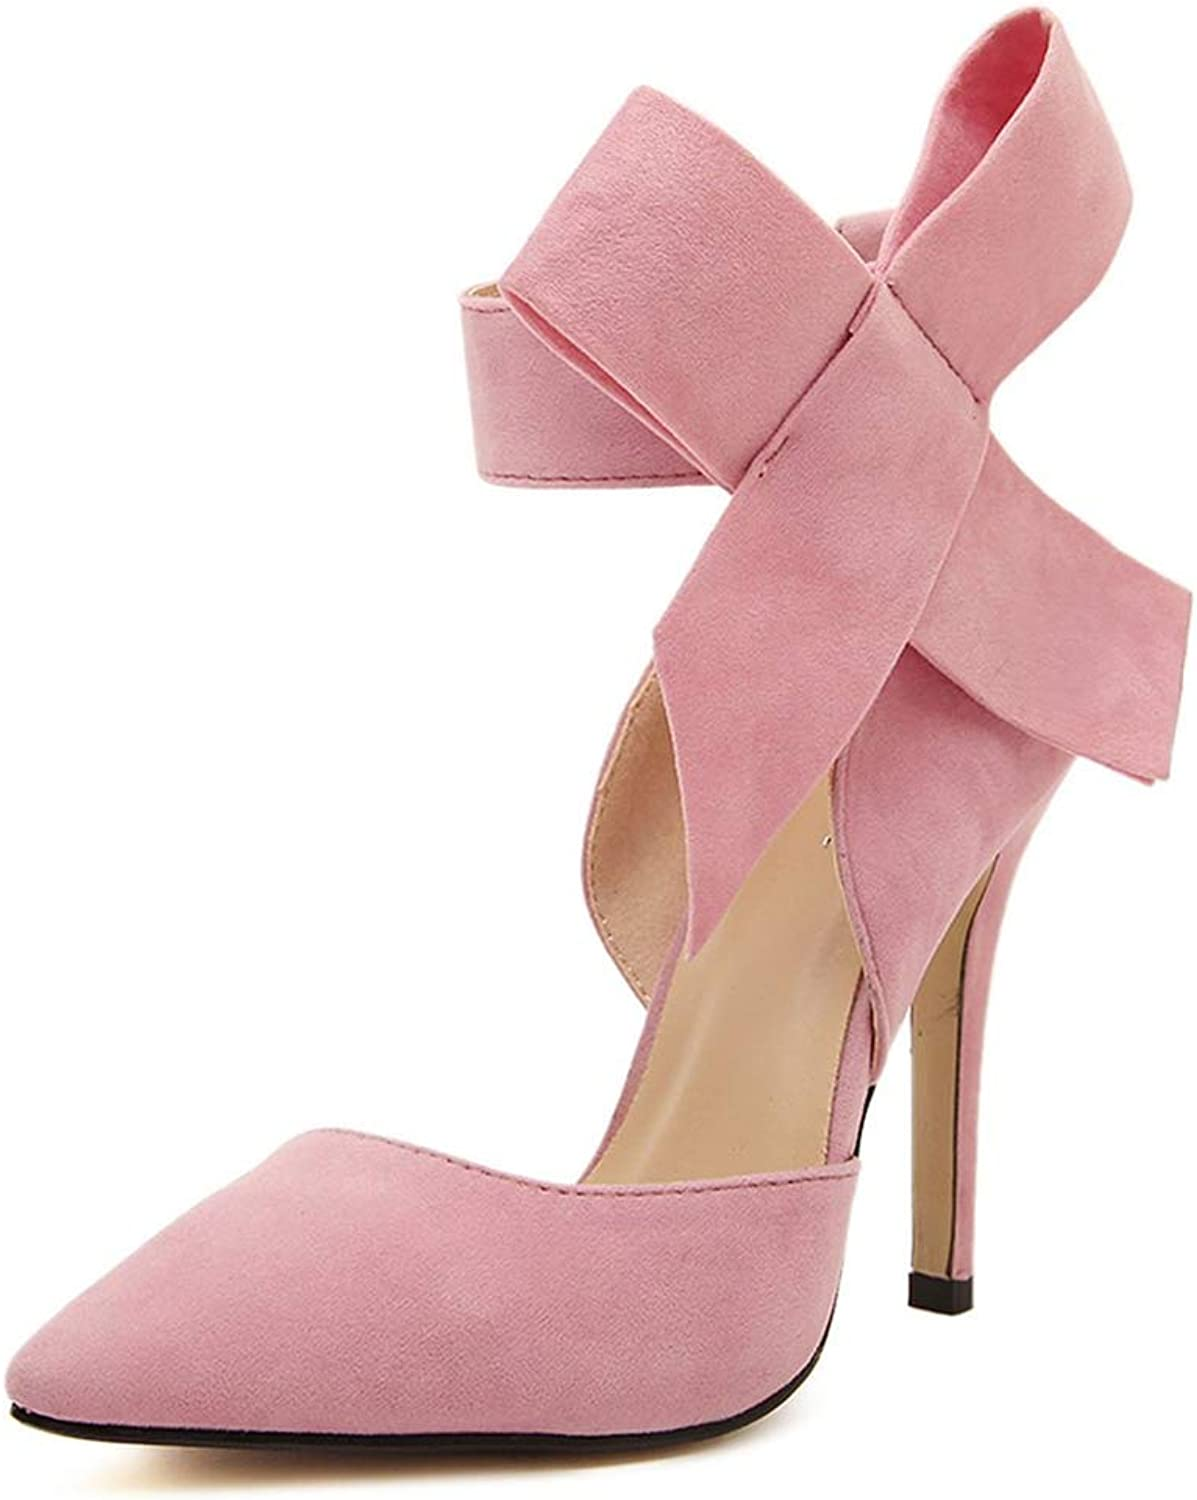 SUNNY Store Women's Vintage Retro Ankle Strappy Buckle Dress High Heels